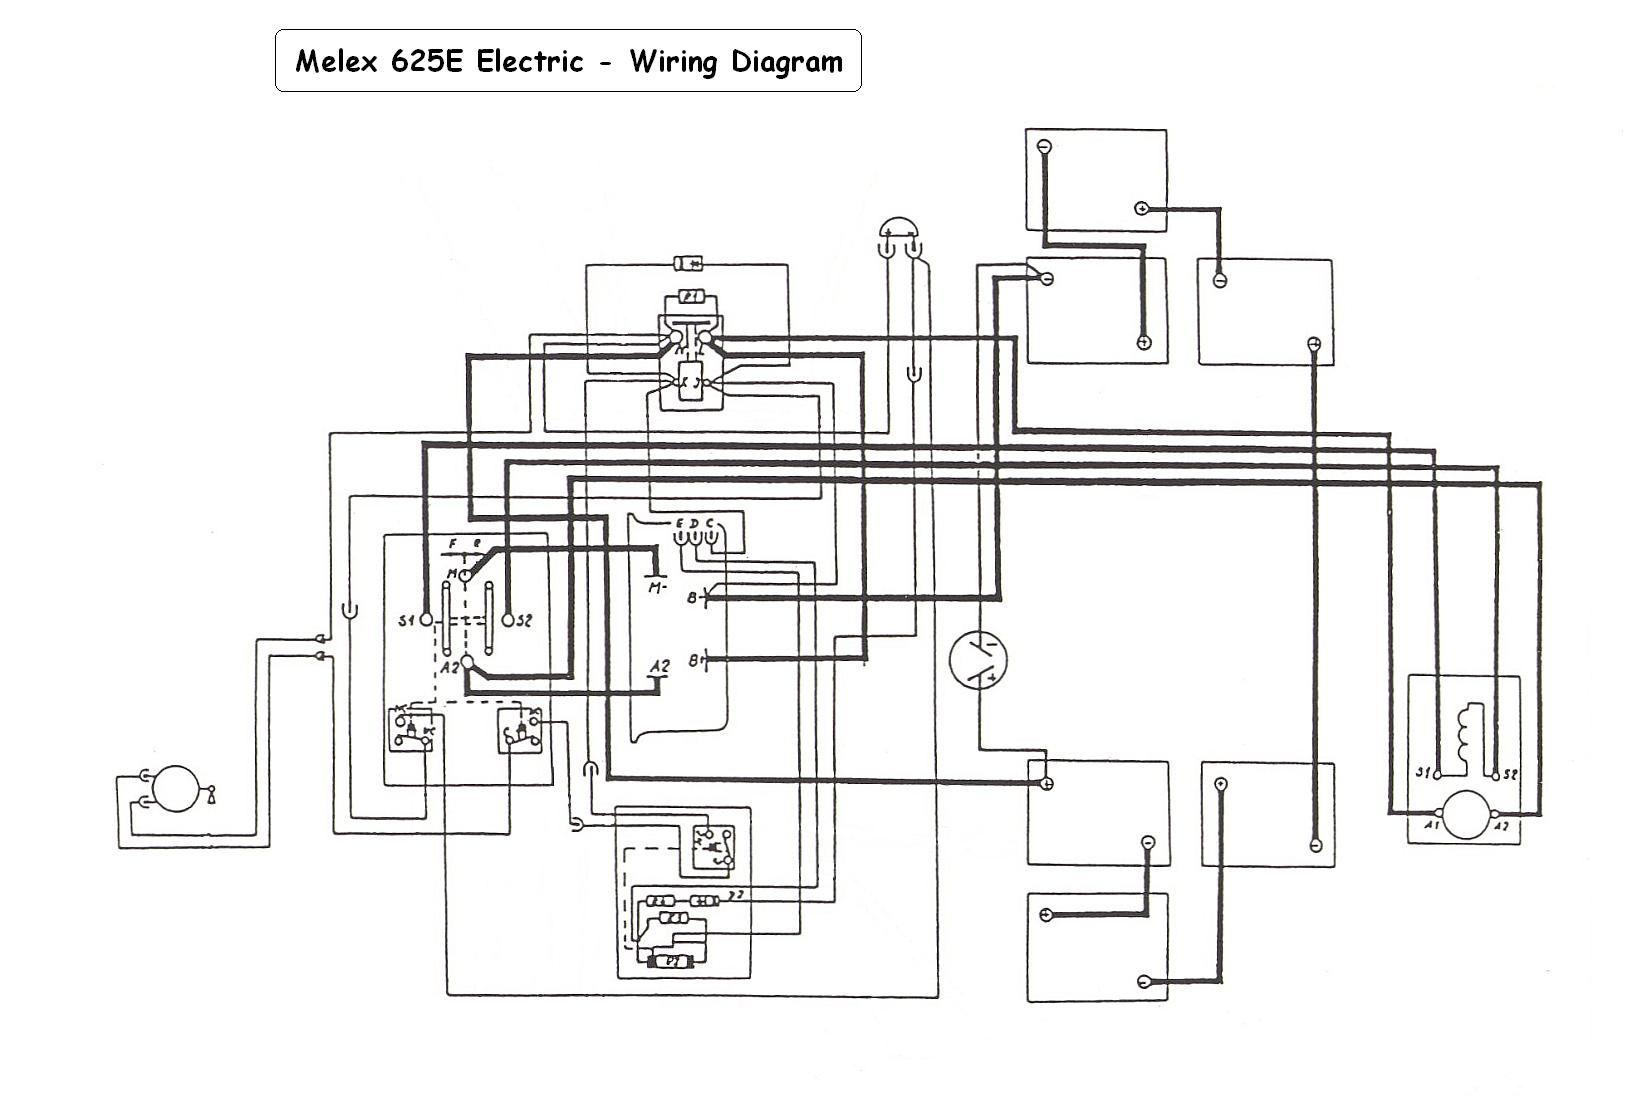 melex 212 golf cart wiring diagram